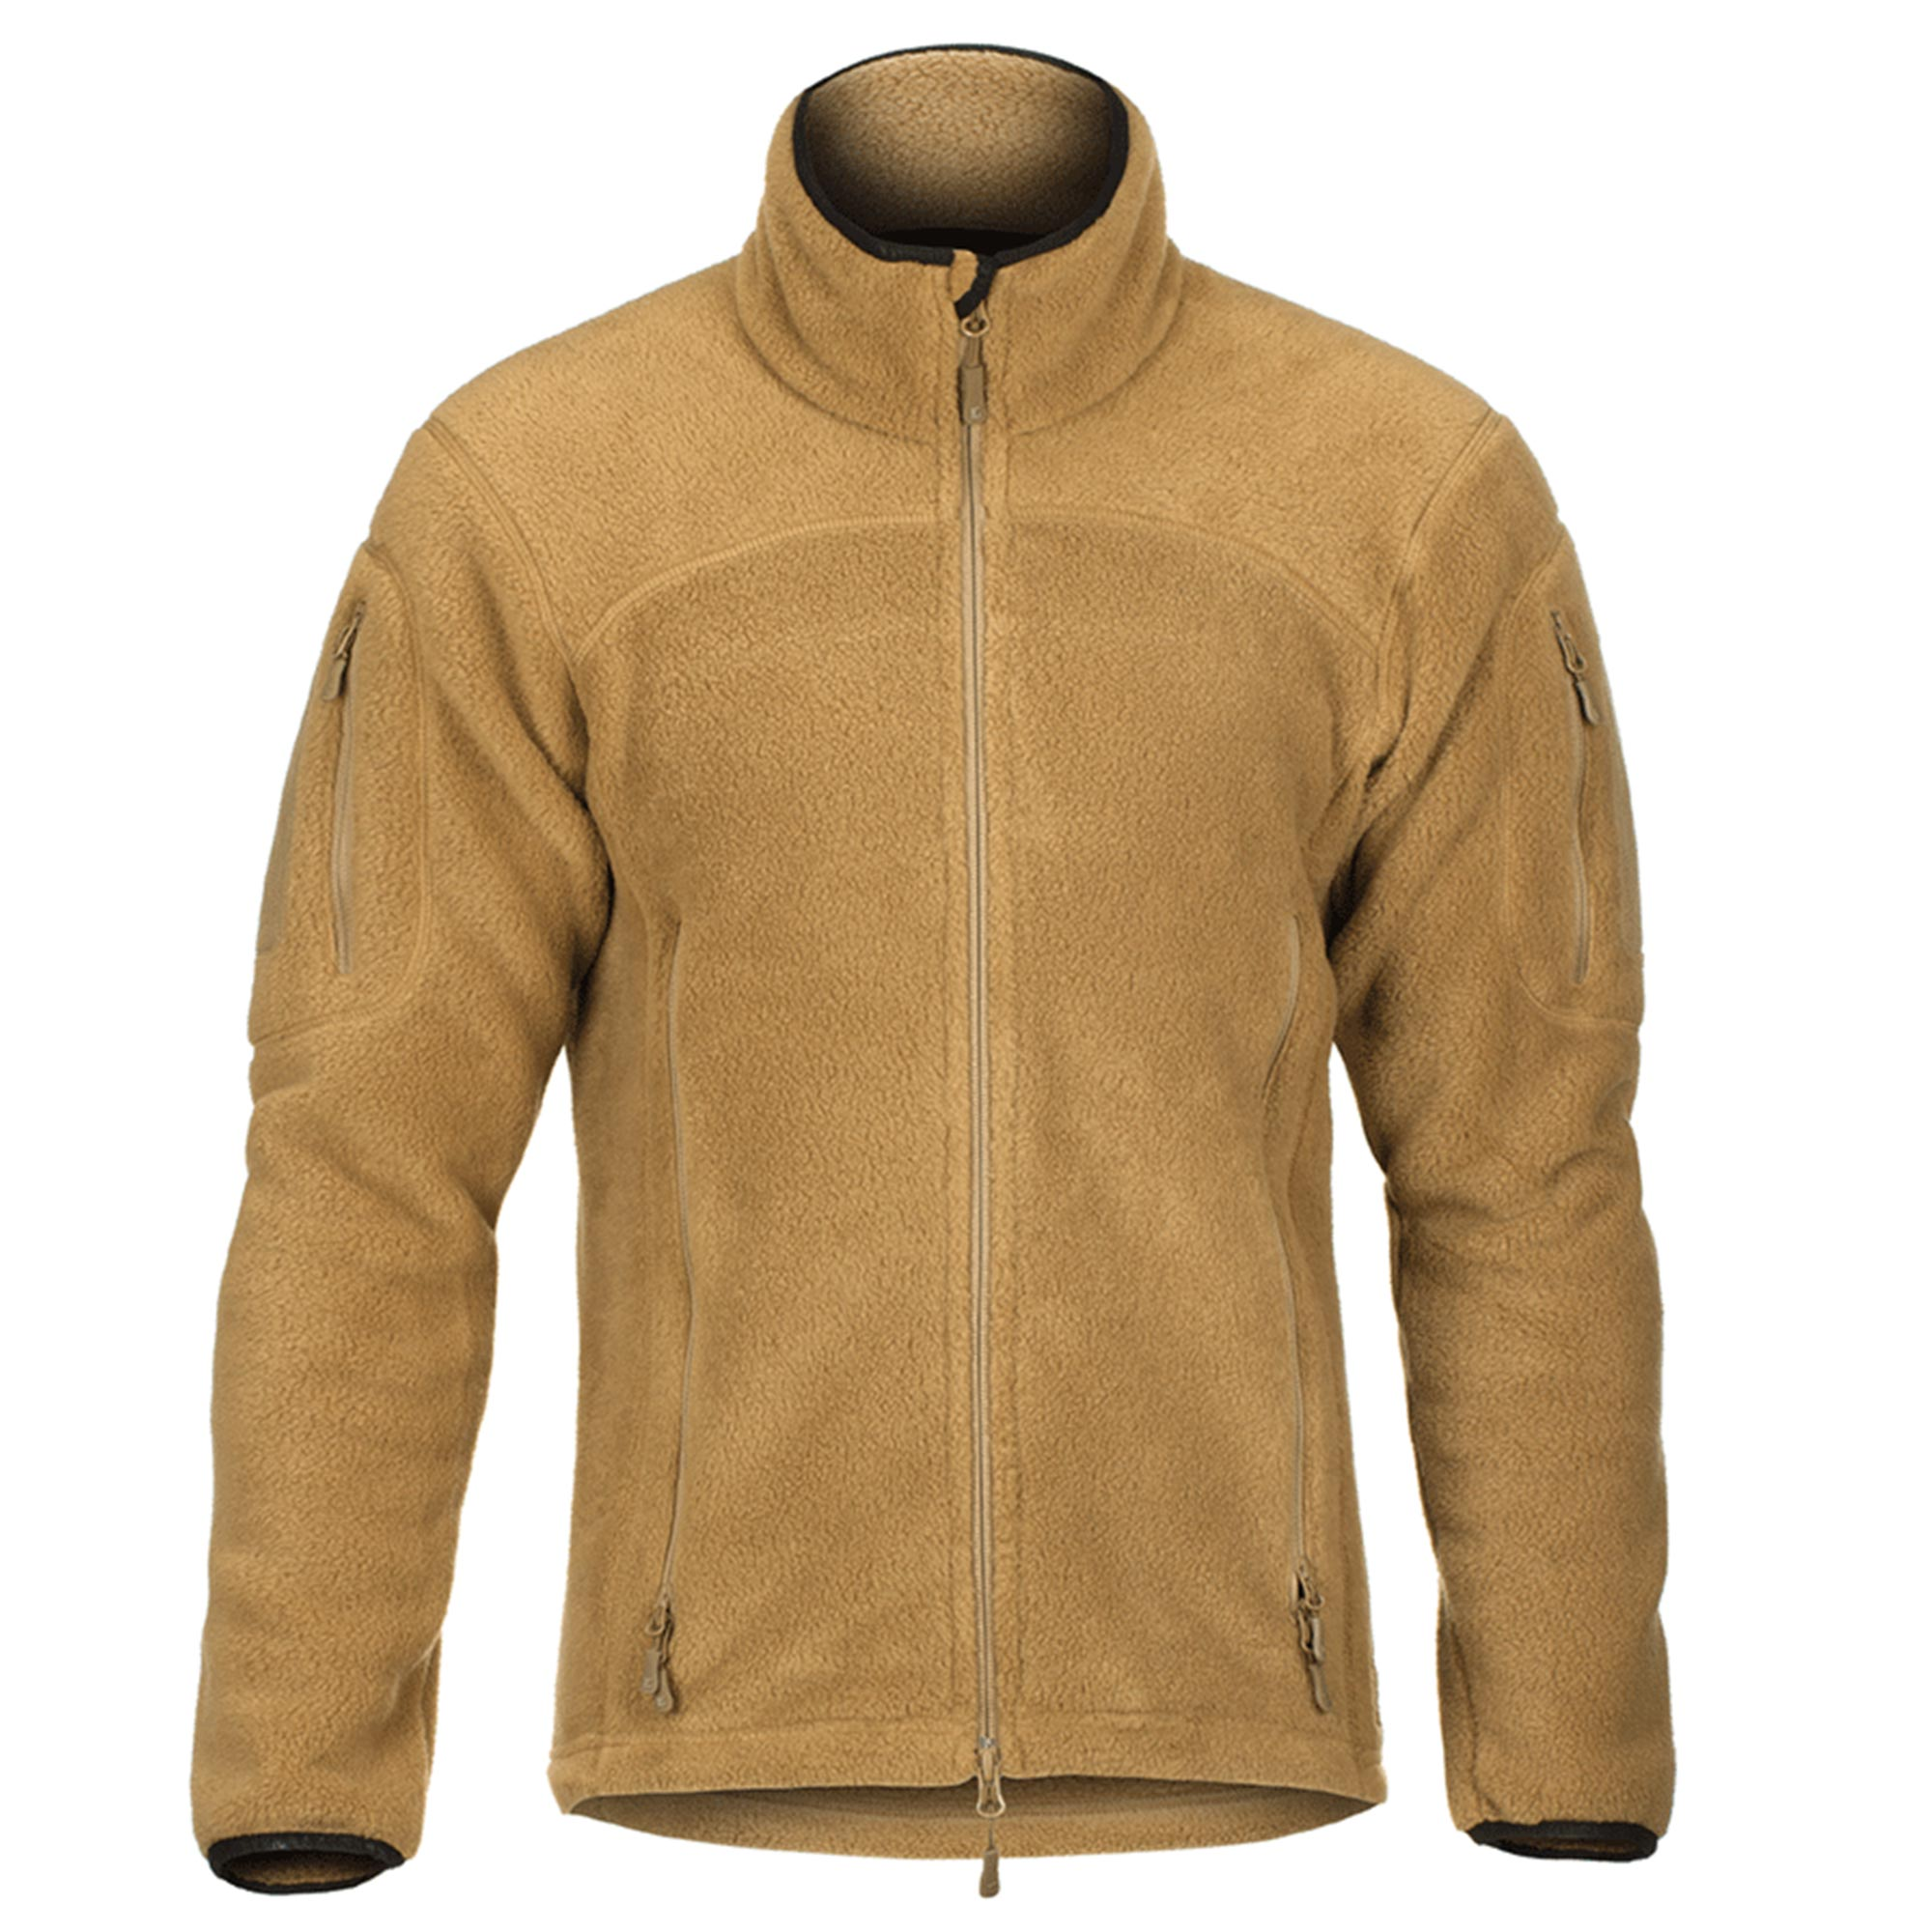 ClawGear Fleece Jacket Milvago coyote